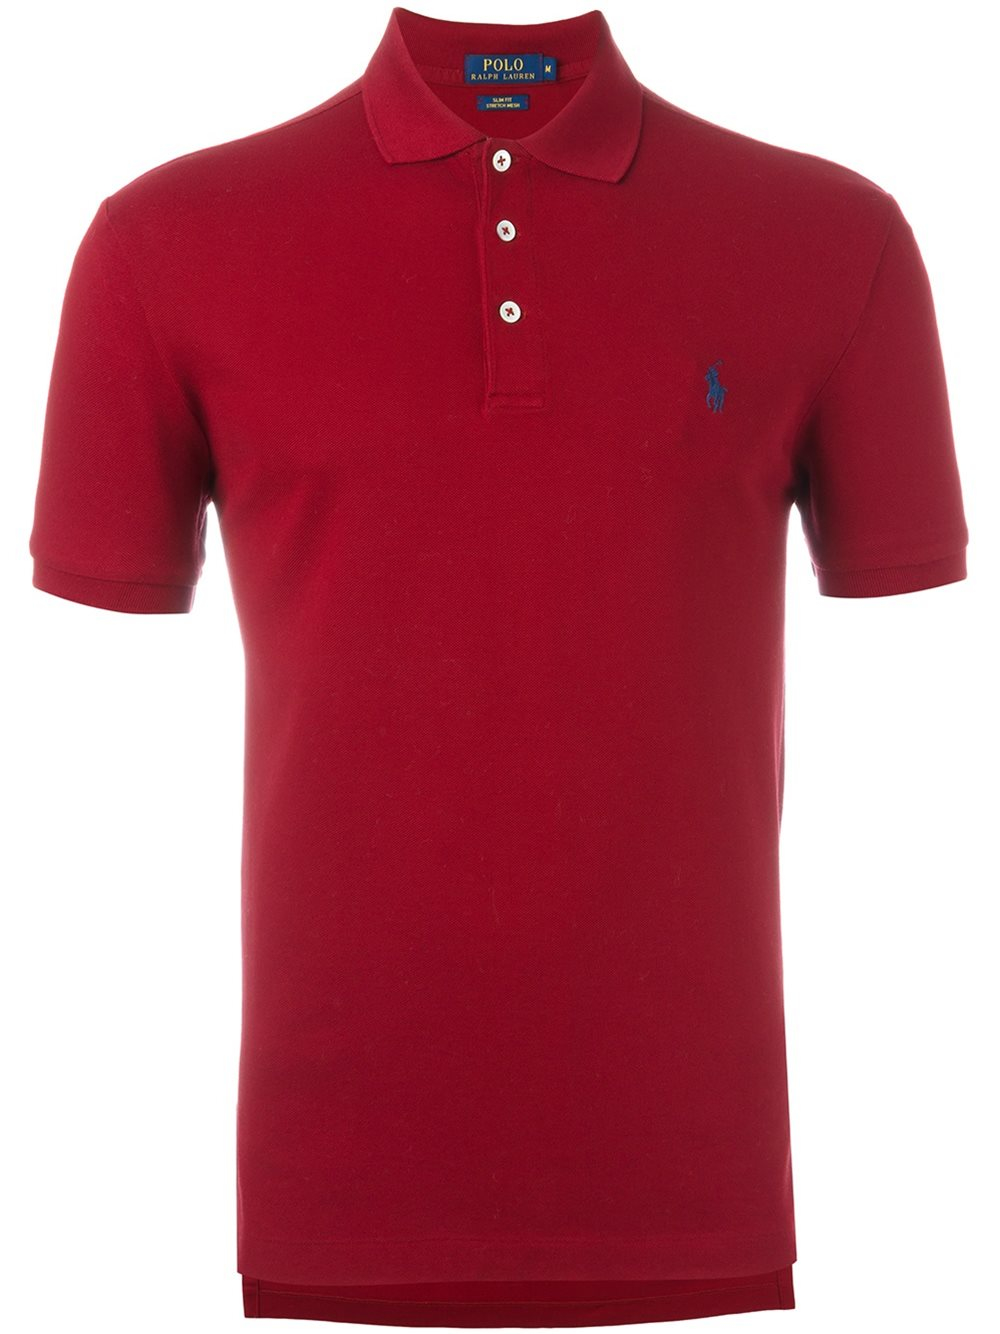 Polo ralph lauren logo embroidered polo shirt in black for for Logo printed polo shirts